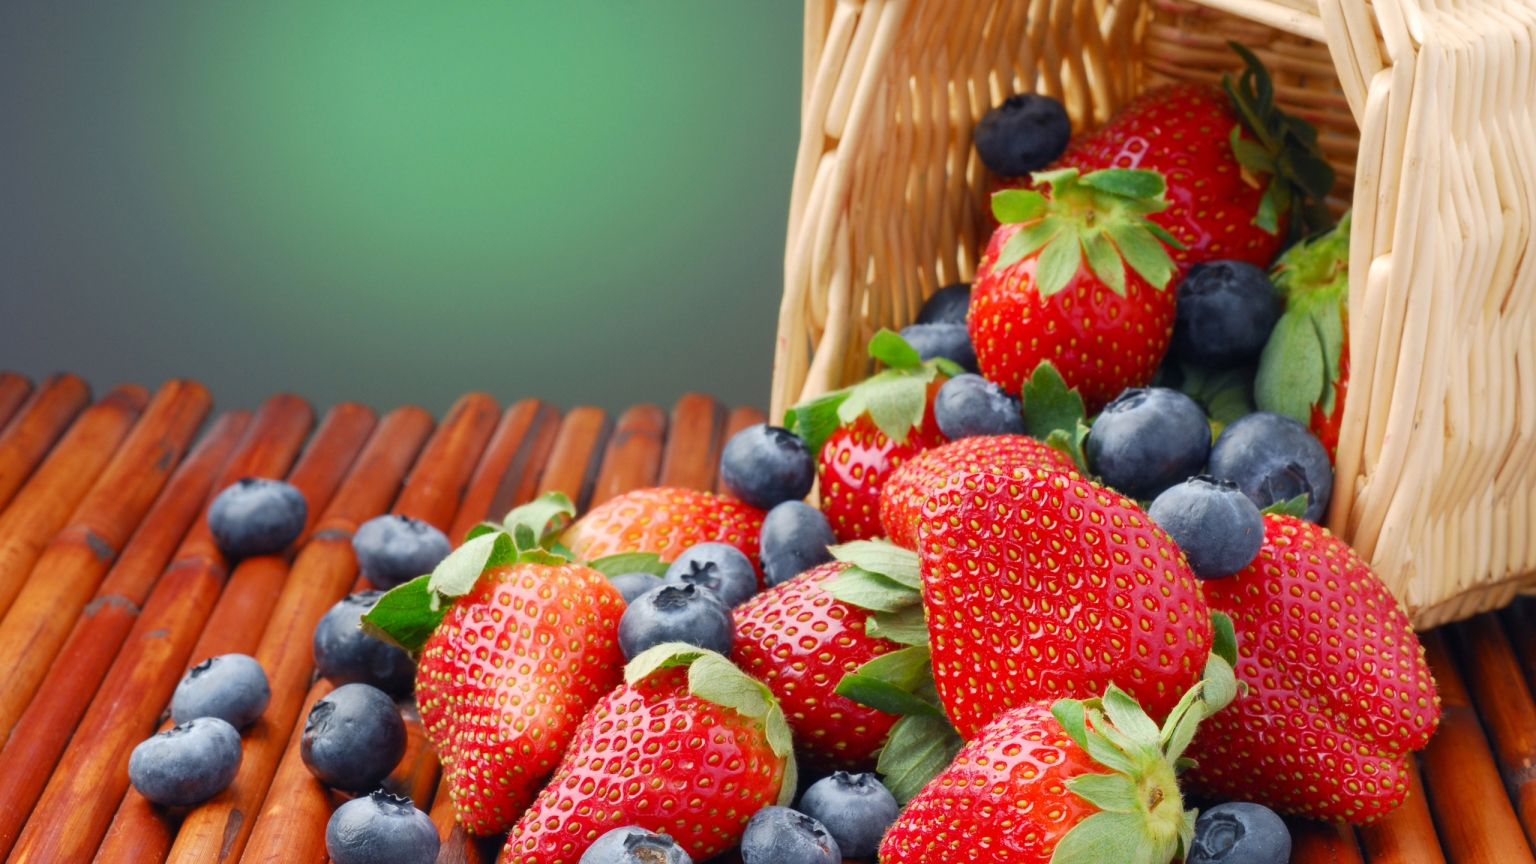 Blueberry and Strawberry for 1536 x 864 HDTV resolution